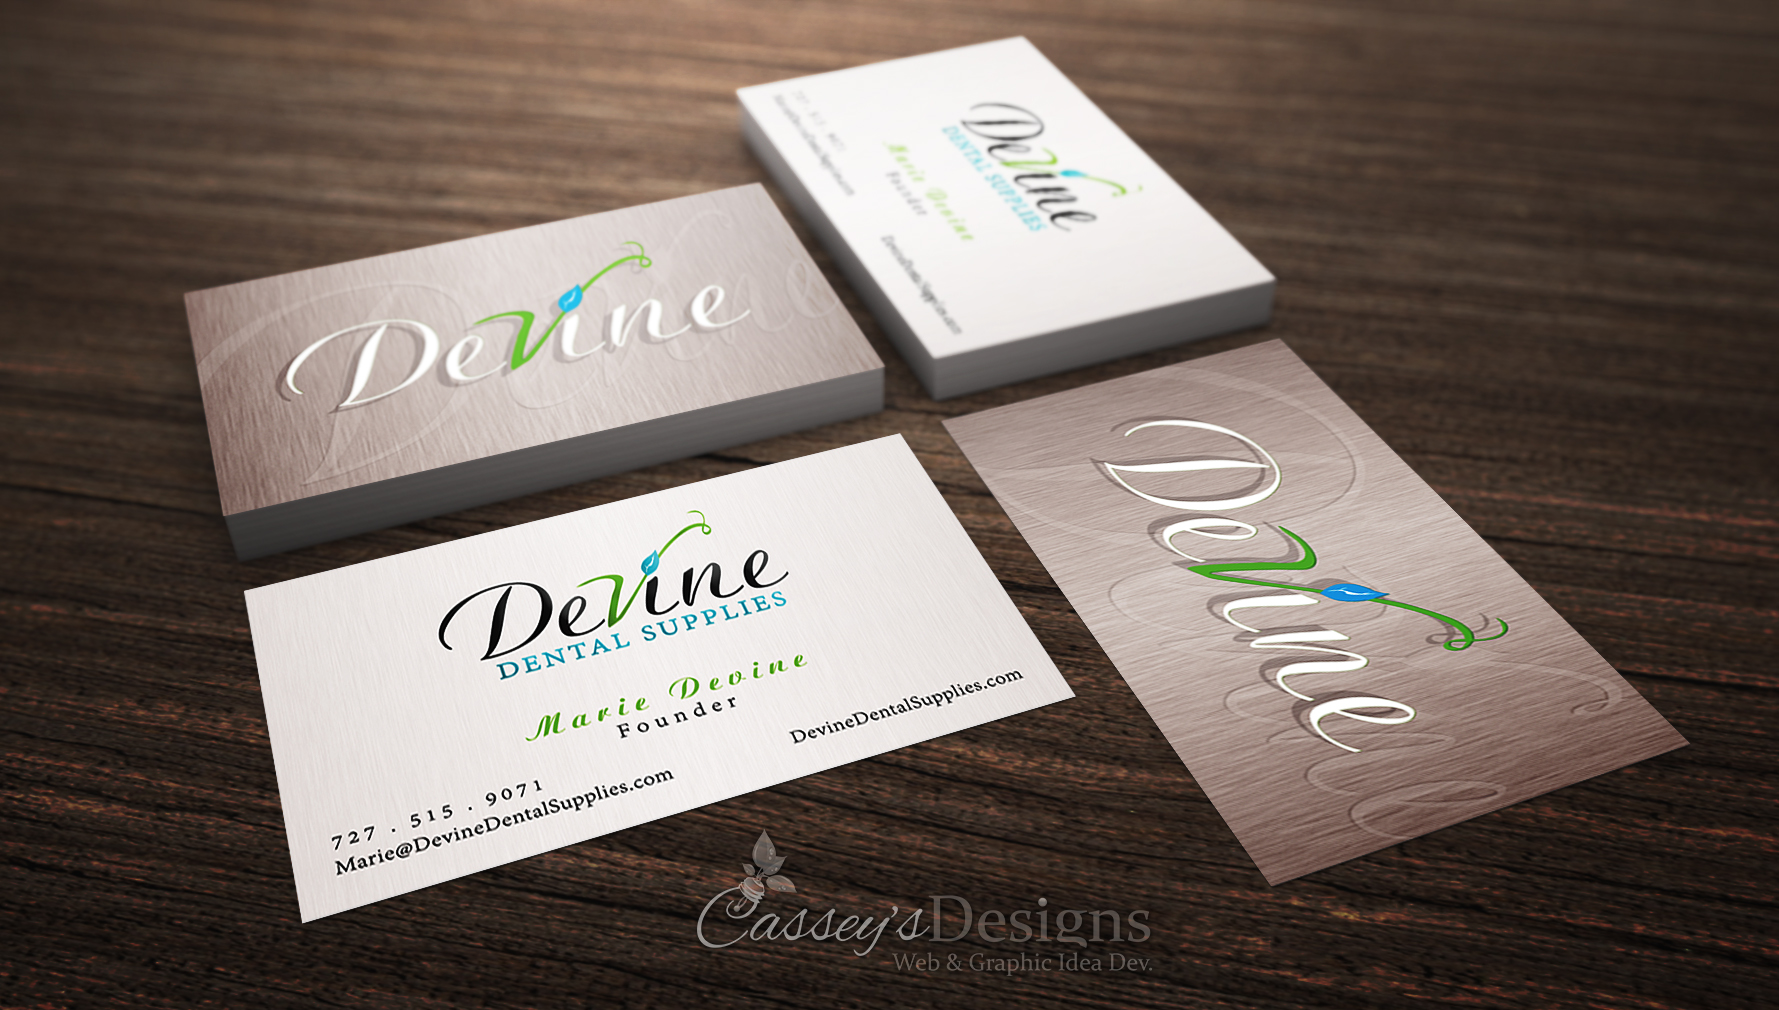 Casseys designs web graphic idea development marie devine devine dental supplies branding with logo business cards colourmoves Gallery